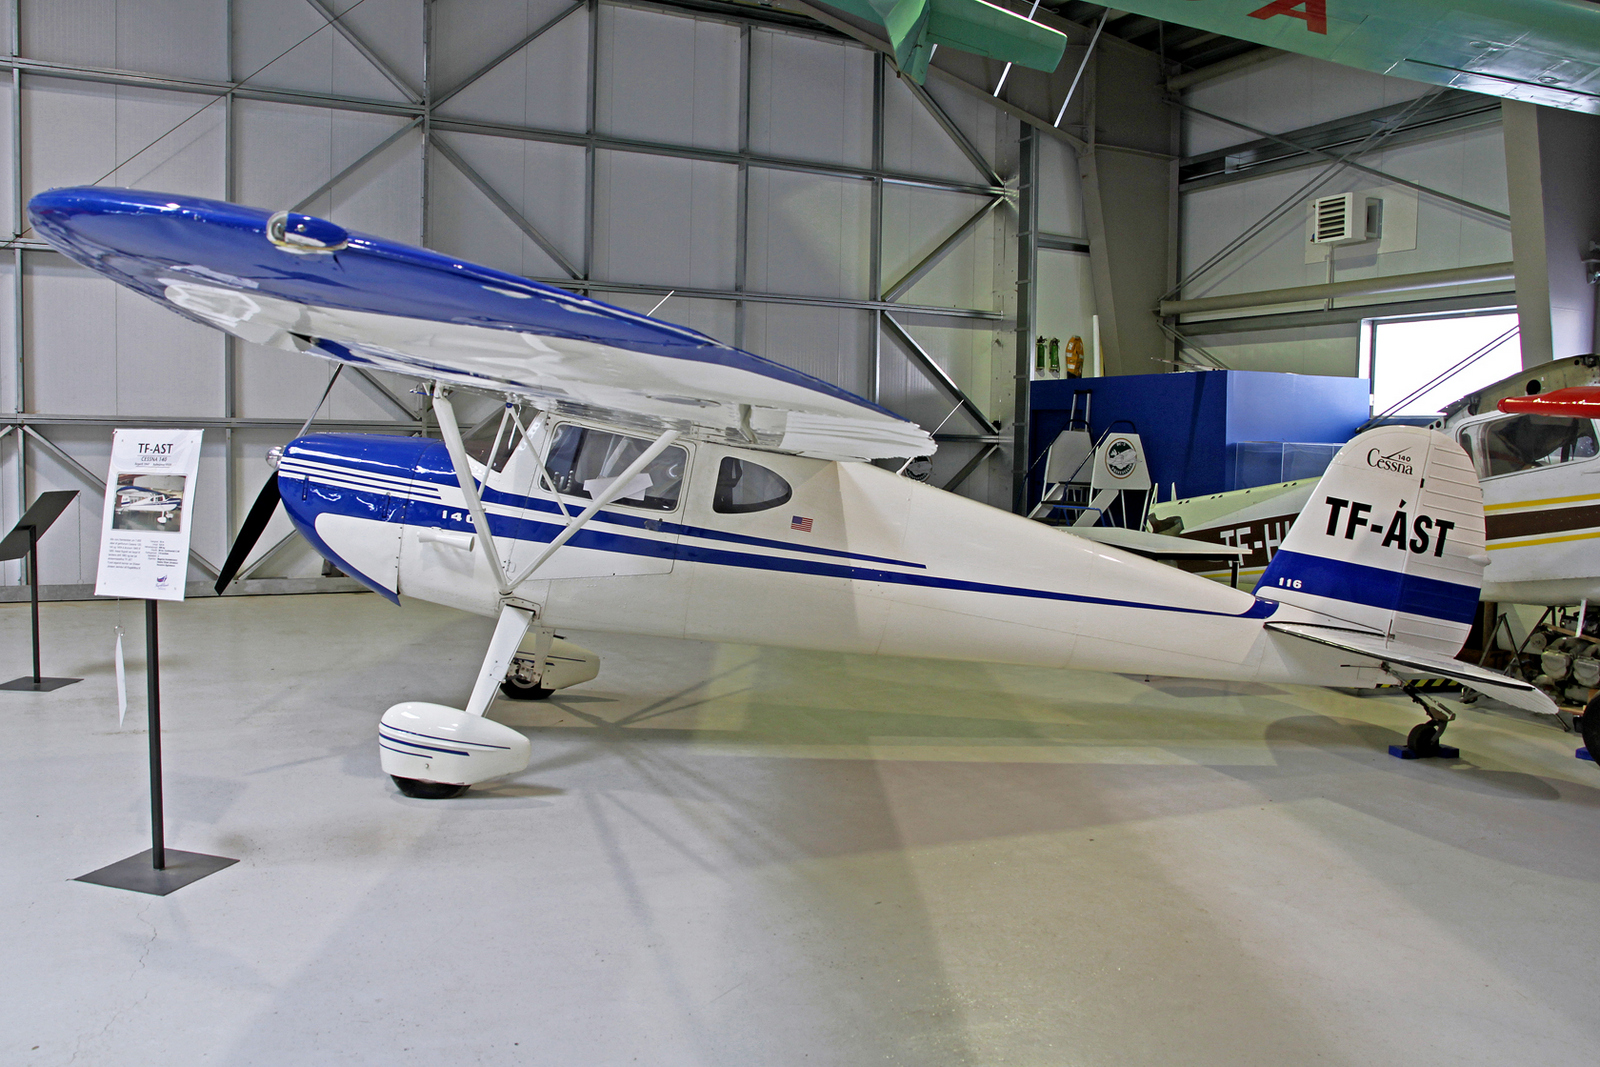 Private Cessna 140 TF-AST, AEY, 14. August 2020